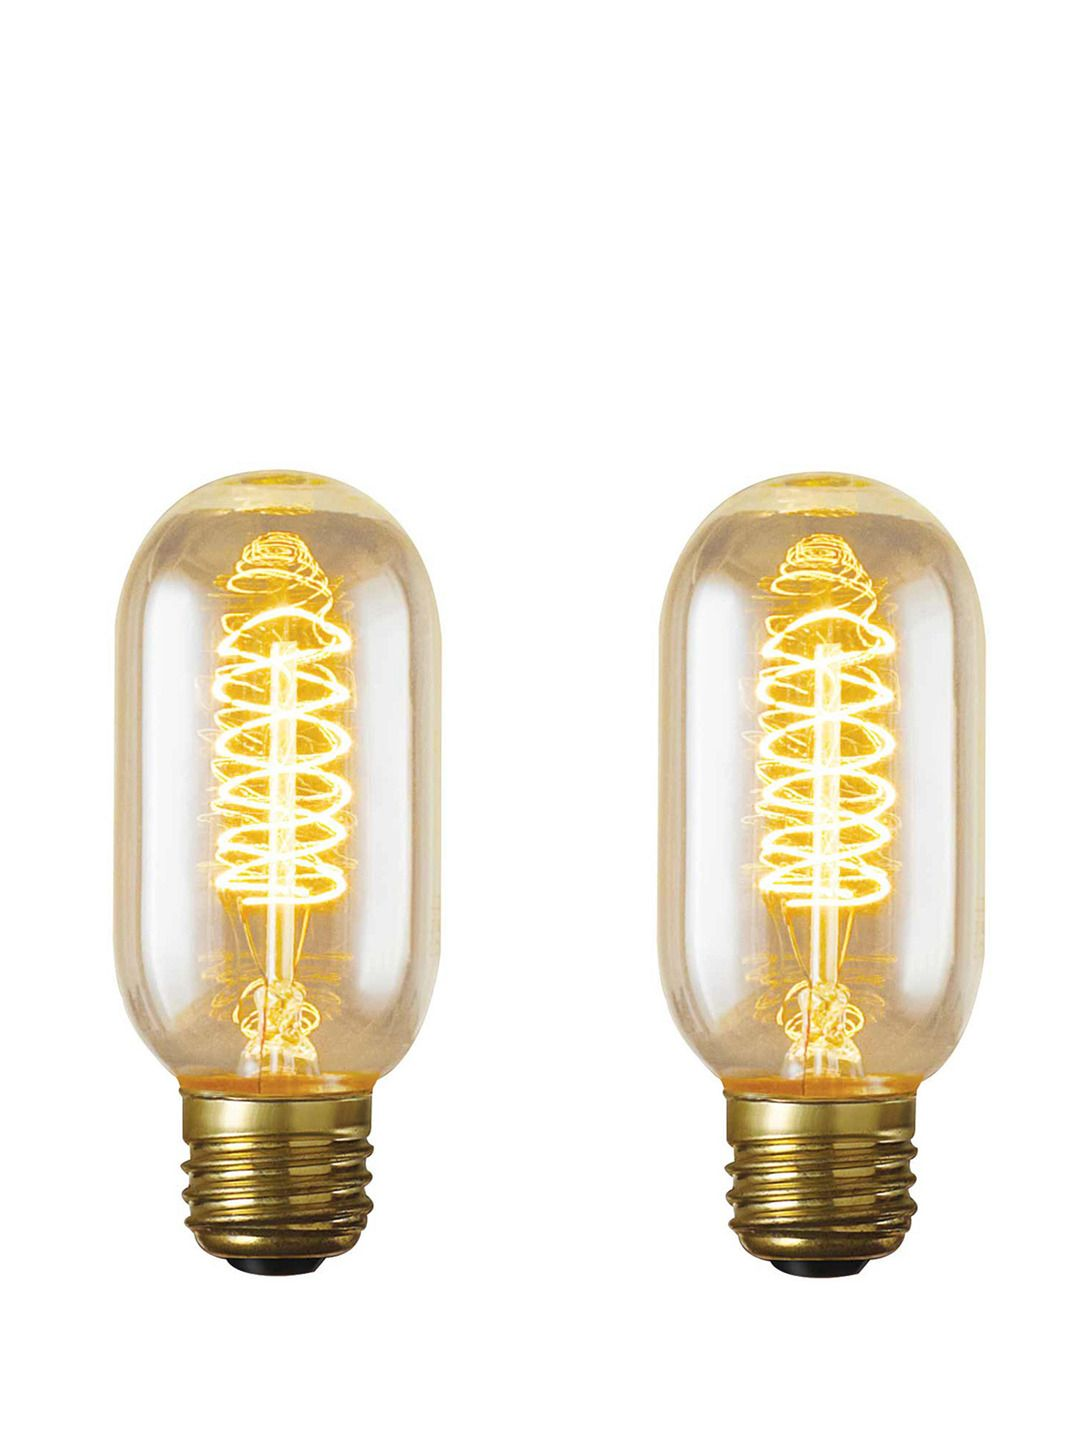 Nostalgic Tubular Bulbs Set Of 2 By Bulbrite At Gilt Bulb Vintage Lighting Bulbrite